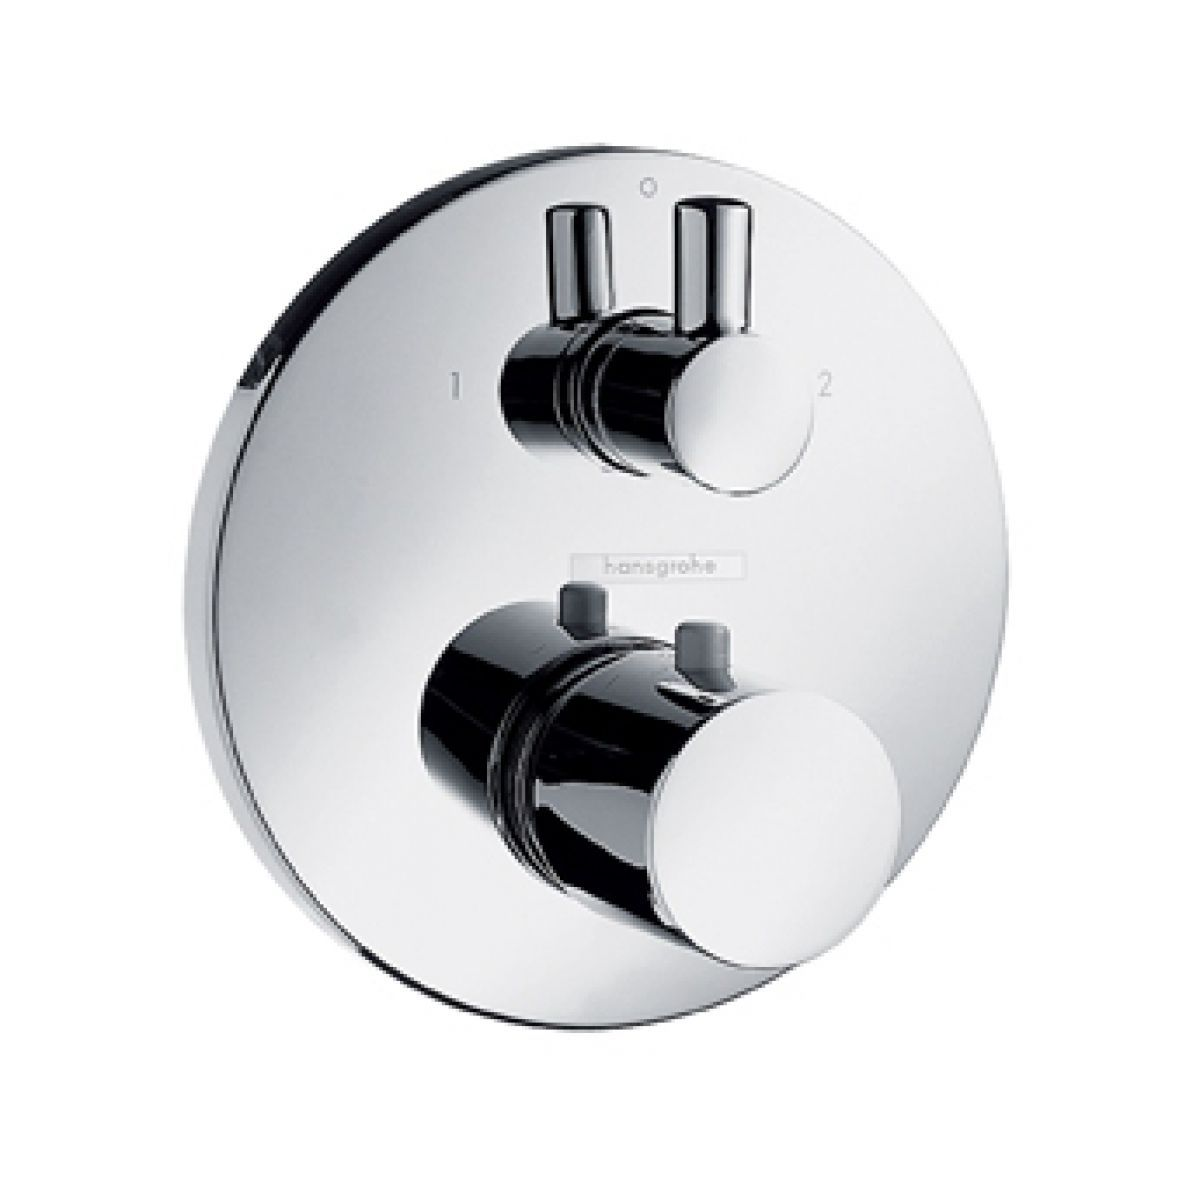 hansgrohe raindance s 240 shower head and valve set uk bathrooms. Black Bedroom Furniture Sets. Home Design Ideas